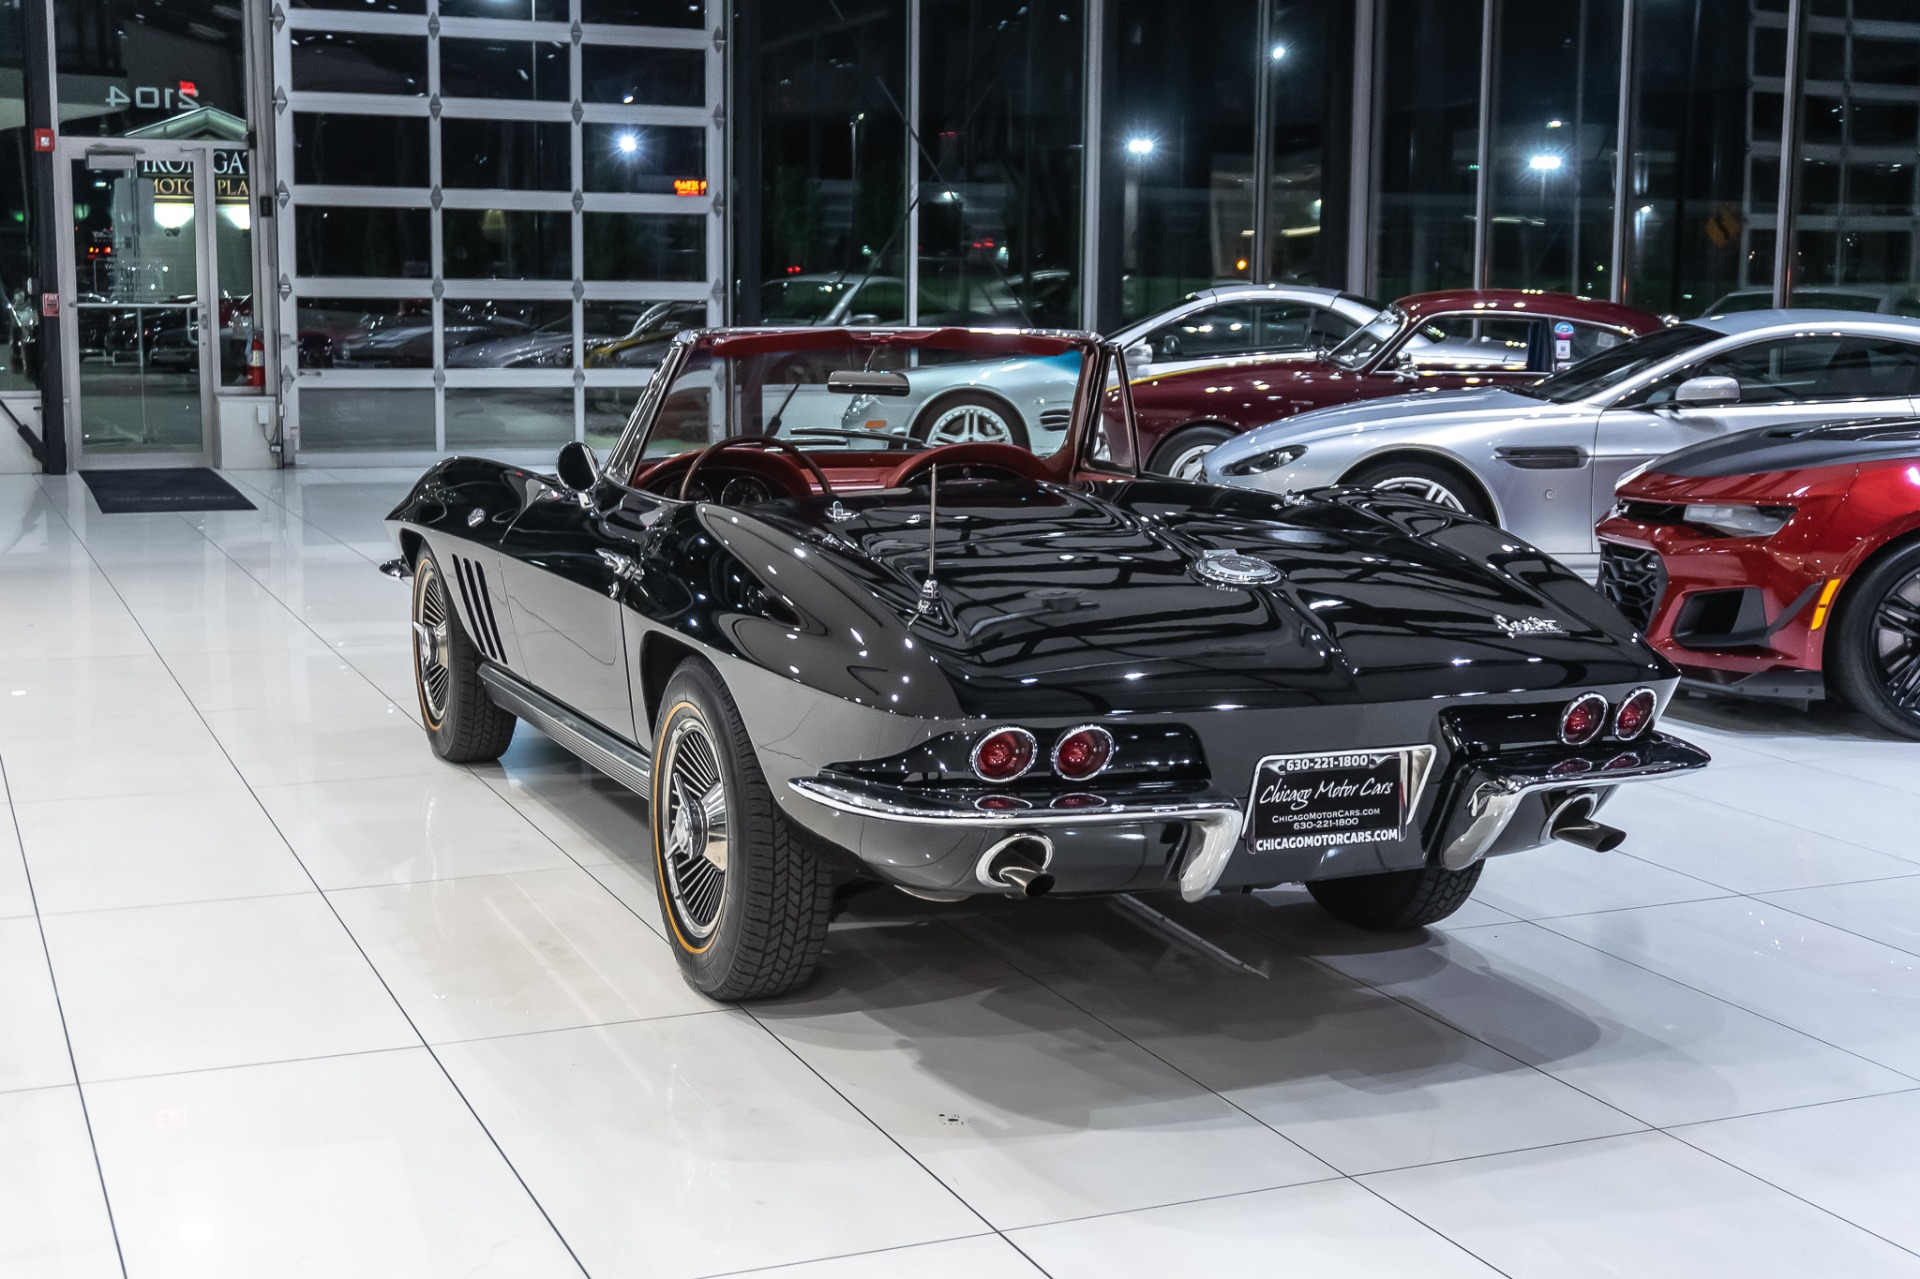 Used-1966-Chevrolet-Corvette-Stingray-Convertible-Numbers-Matching-327ci-4-Speed-Restored-Former-NHL-Players